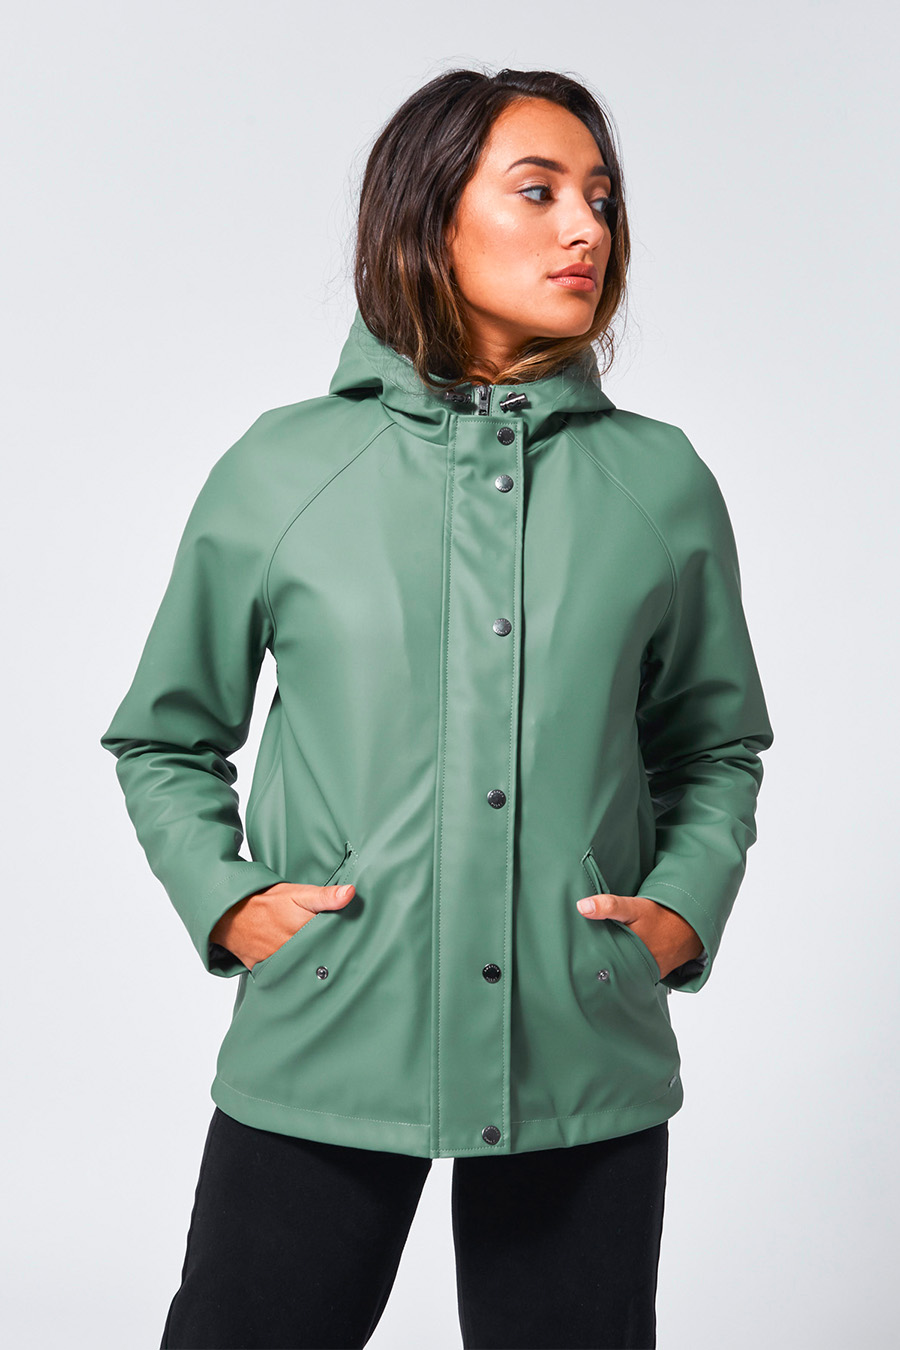 Janet teddy raincoat